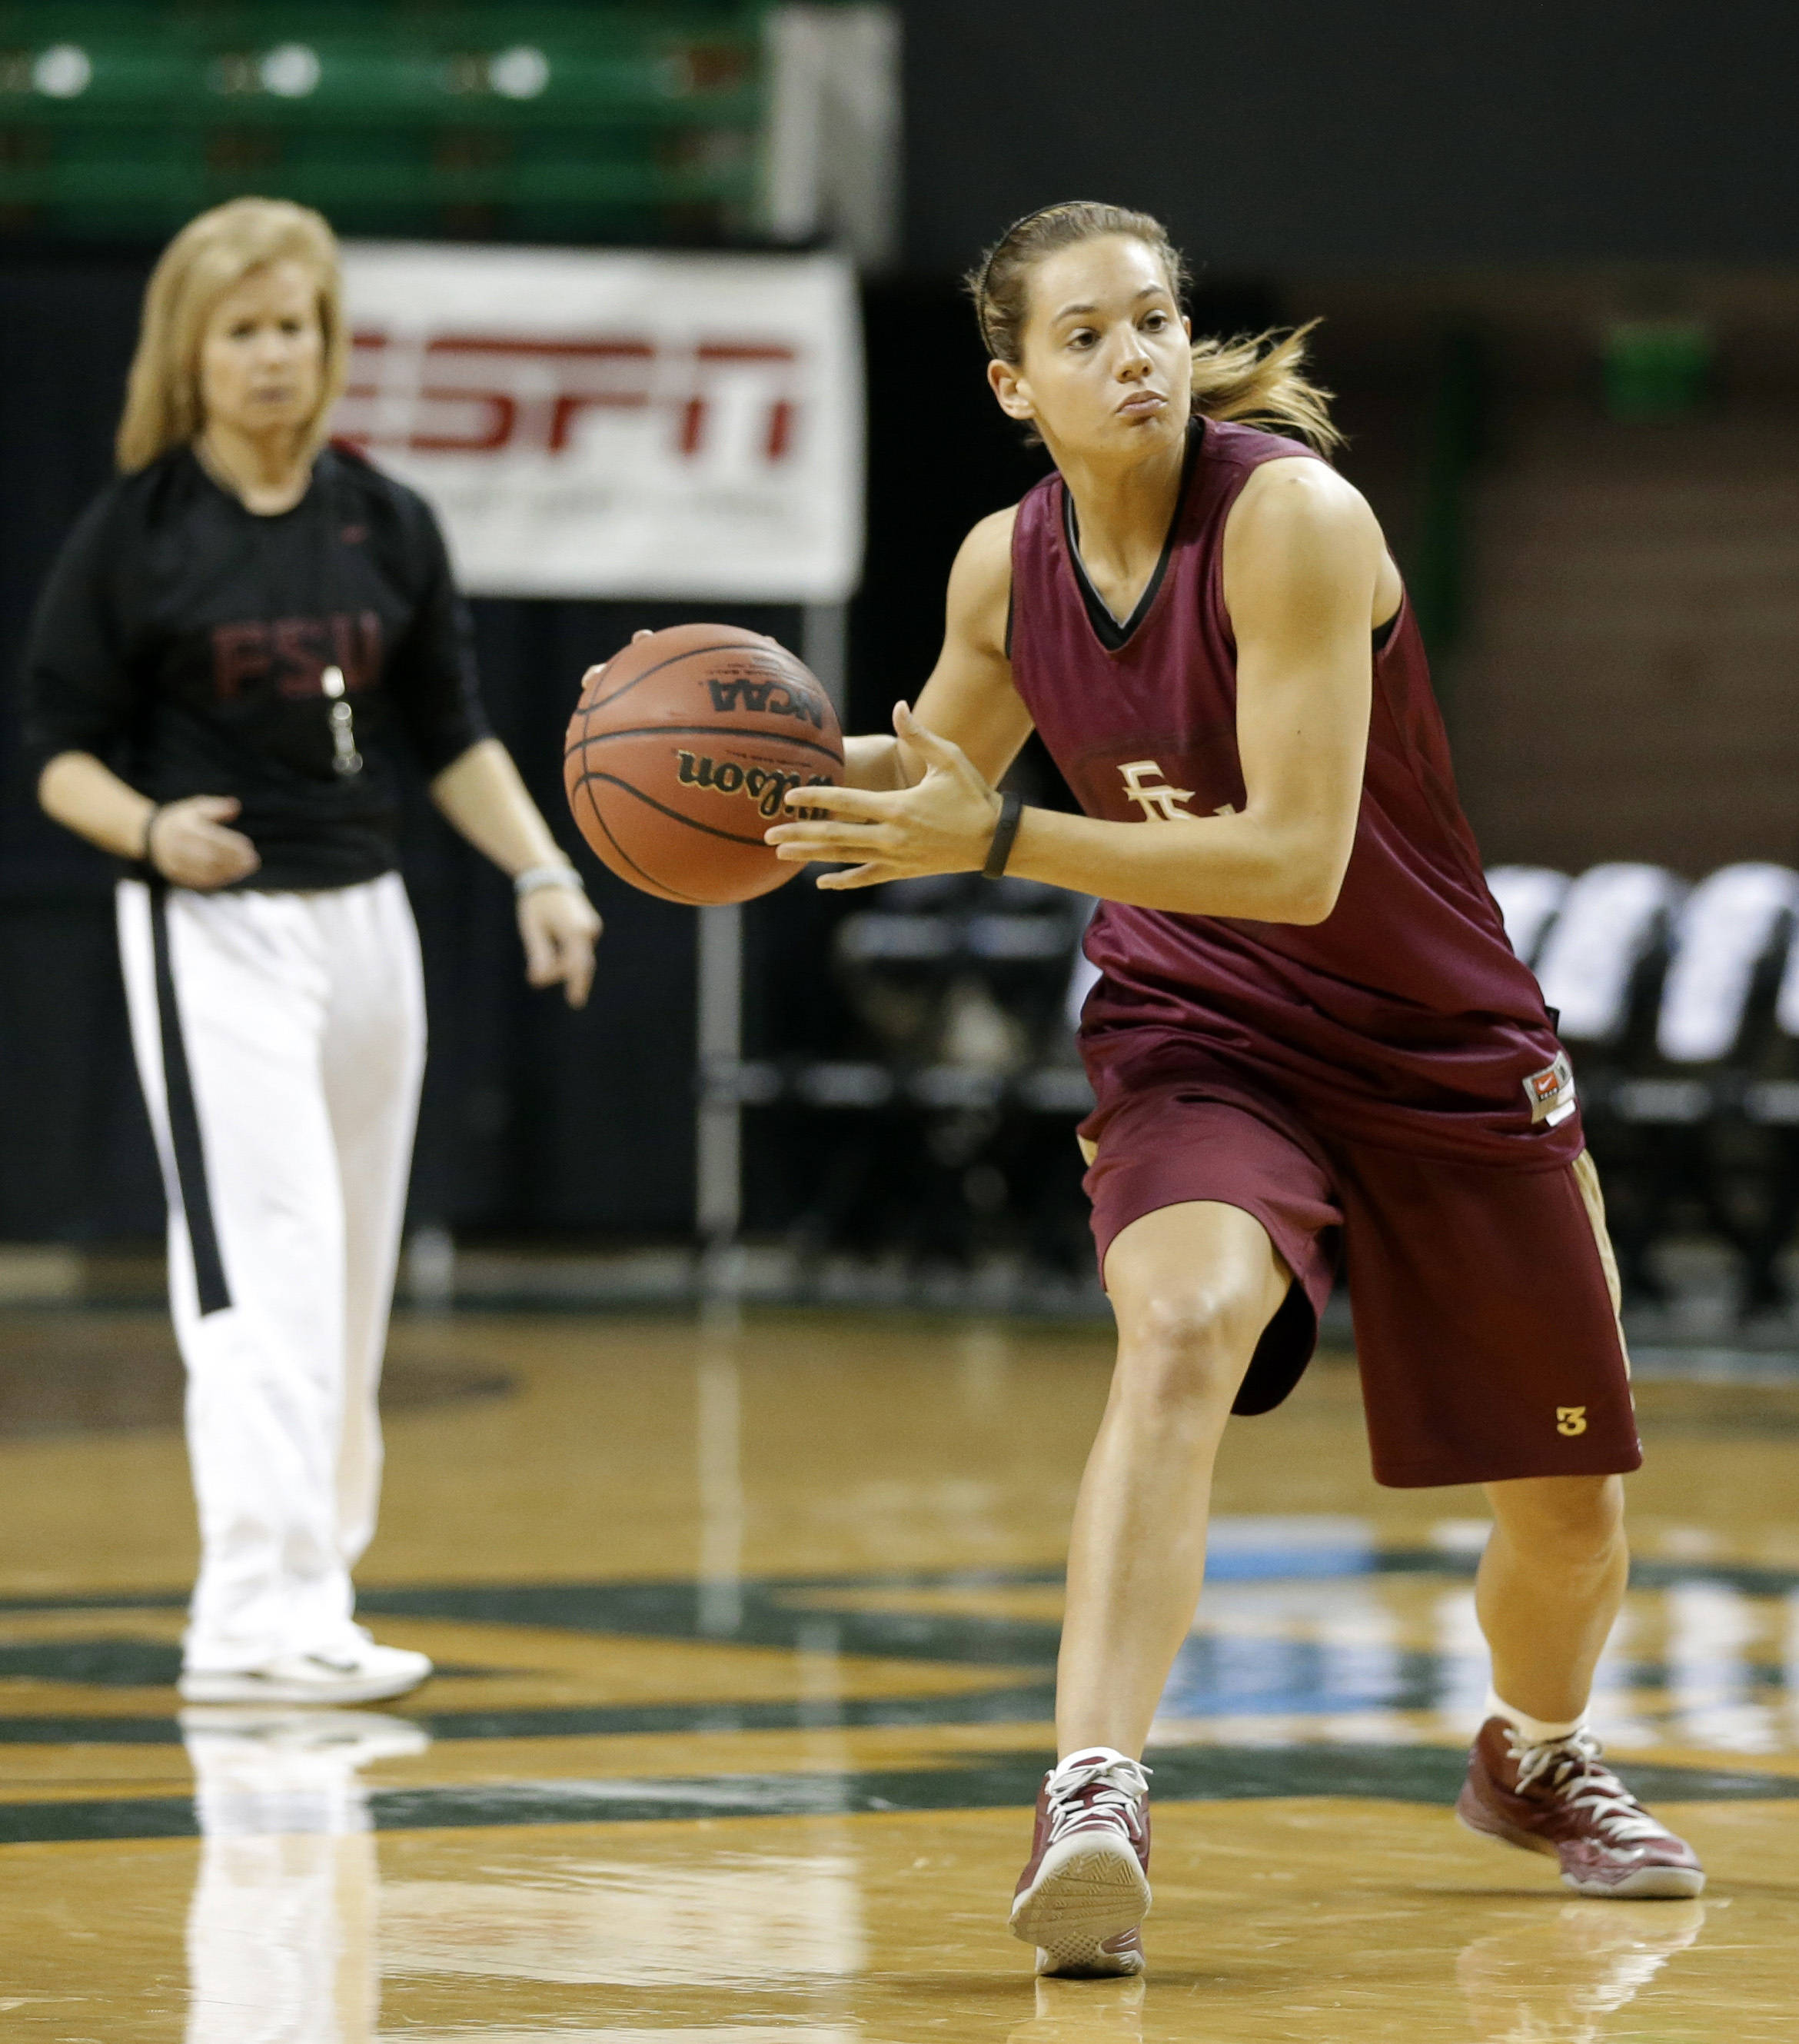 Florida State guard Alexa DeLuzio prepares to pass the ball as head coach Sue Semrau, left rear, watches during practice for a first-round game in the women's NCAA college basketball tournament Saturday, March 23, 2013, in Waco, Texas. FSU will play Princeton on Sunday. (AP Photo/Tony Gutierrez)